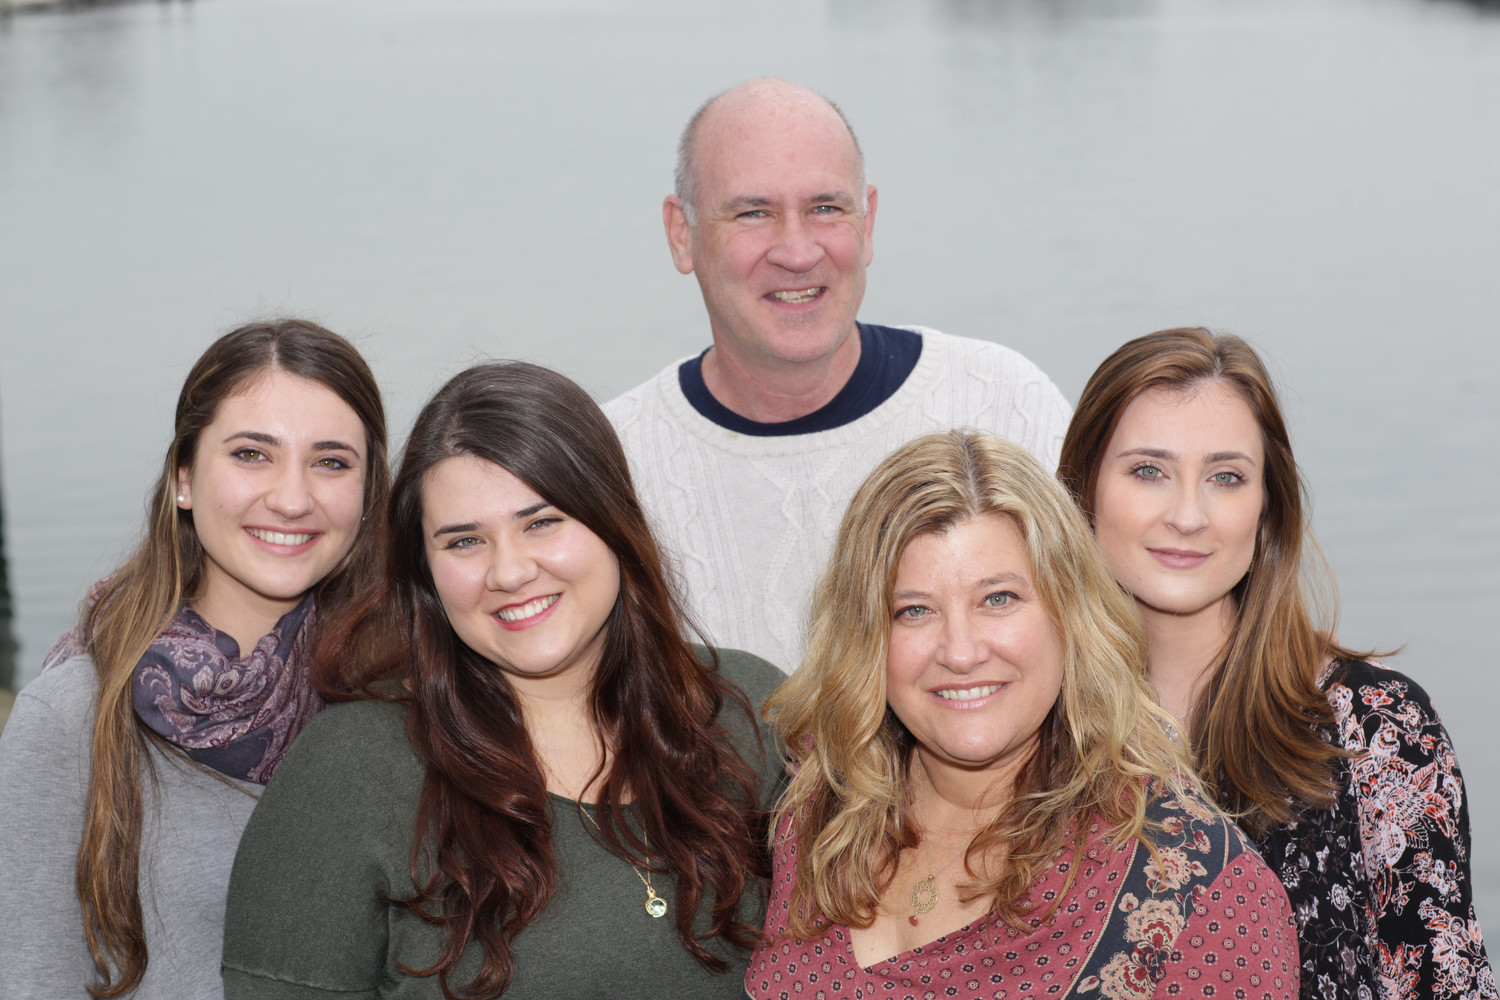 Richie Woods with his wife Wendy and daughters Julia, left, Justine and Jaime. The three loved having their father teach at the same high school they attended, Wendy said.